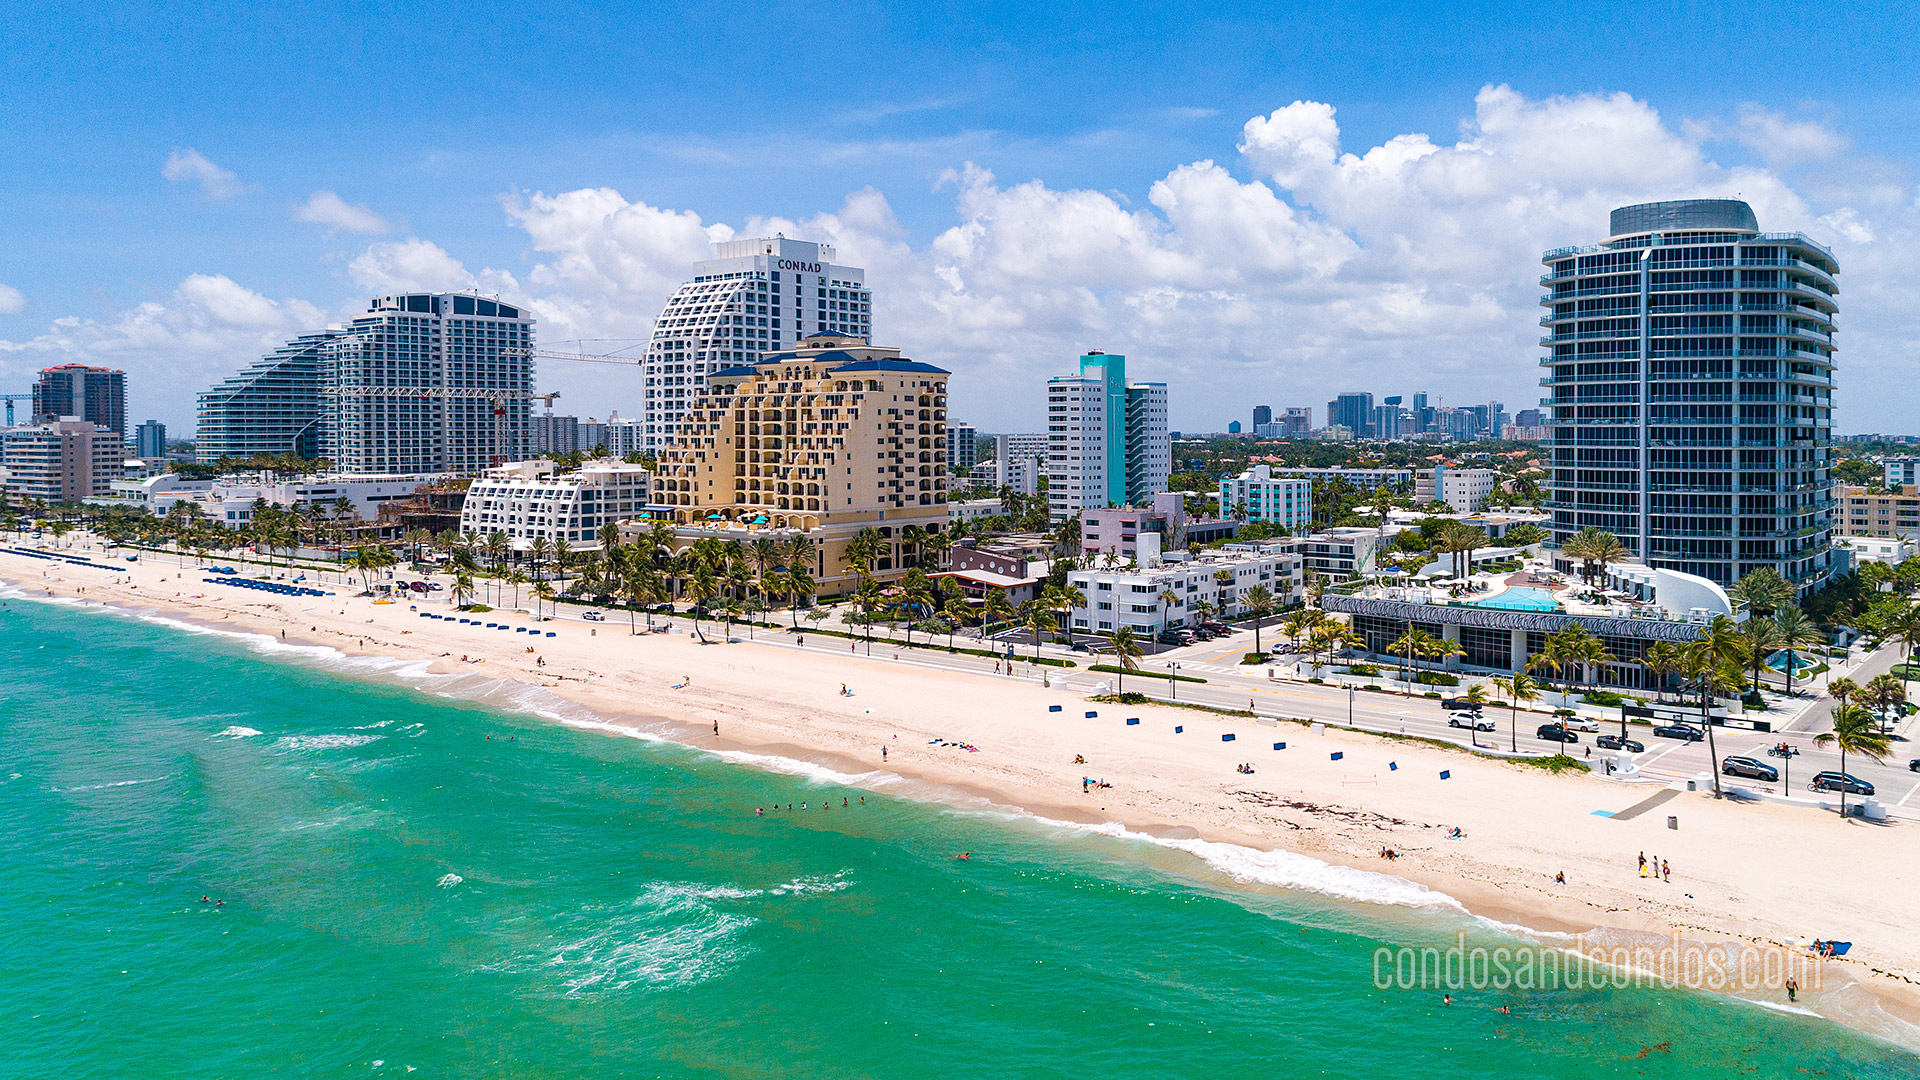 Fort Lauderdale Beach Condominiums for Sale